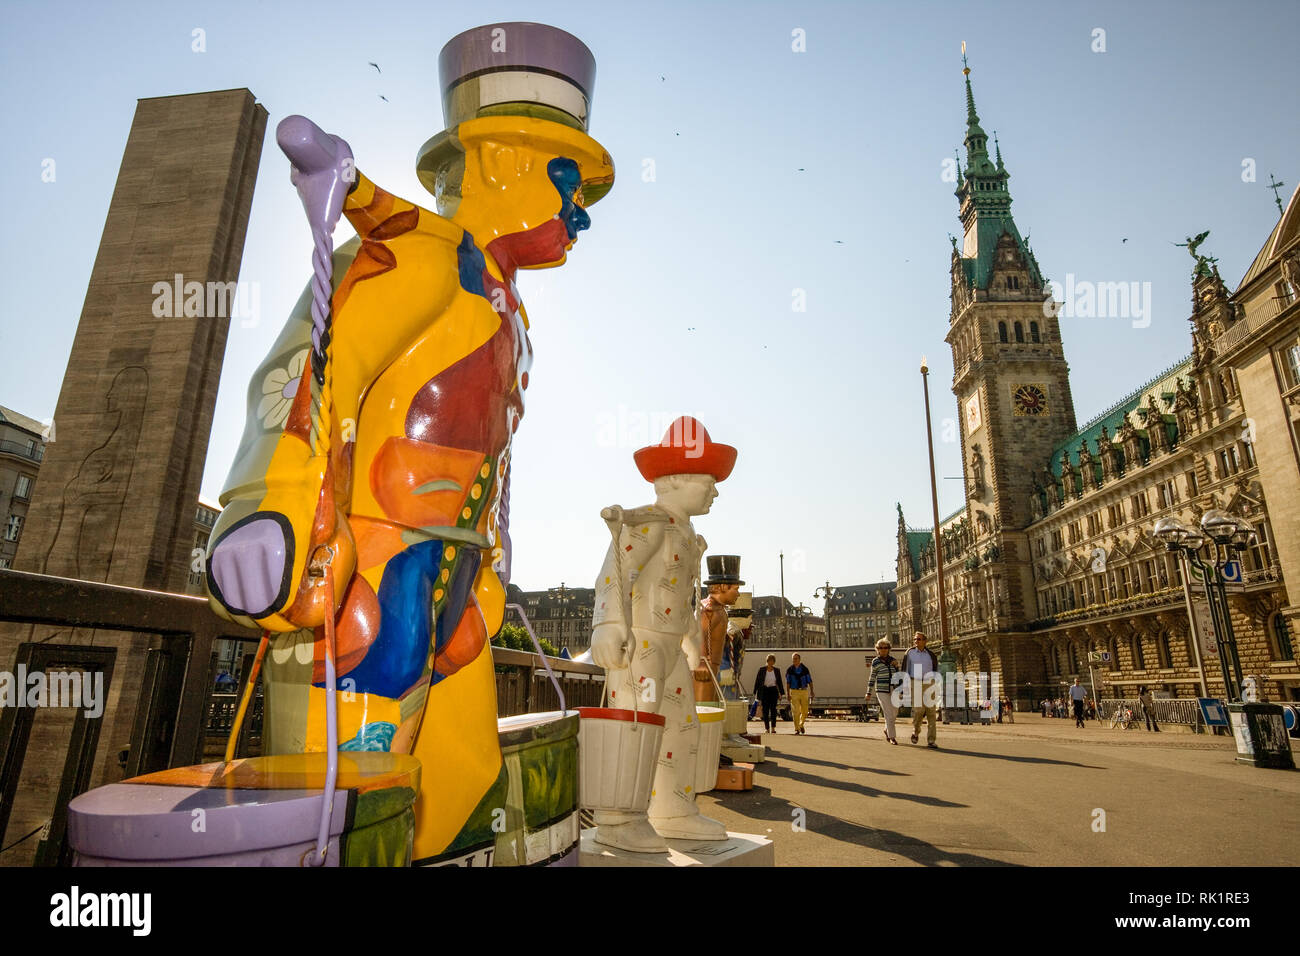 Hamburg, Germany; View of the Rathaus (Town Hall) with statues of the city mascot, Hans Hummel. - Stock Image